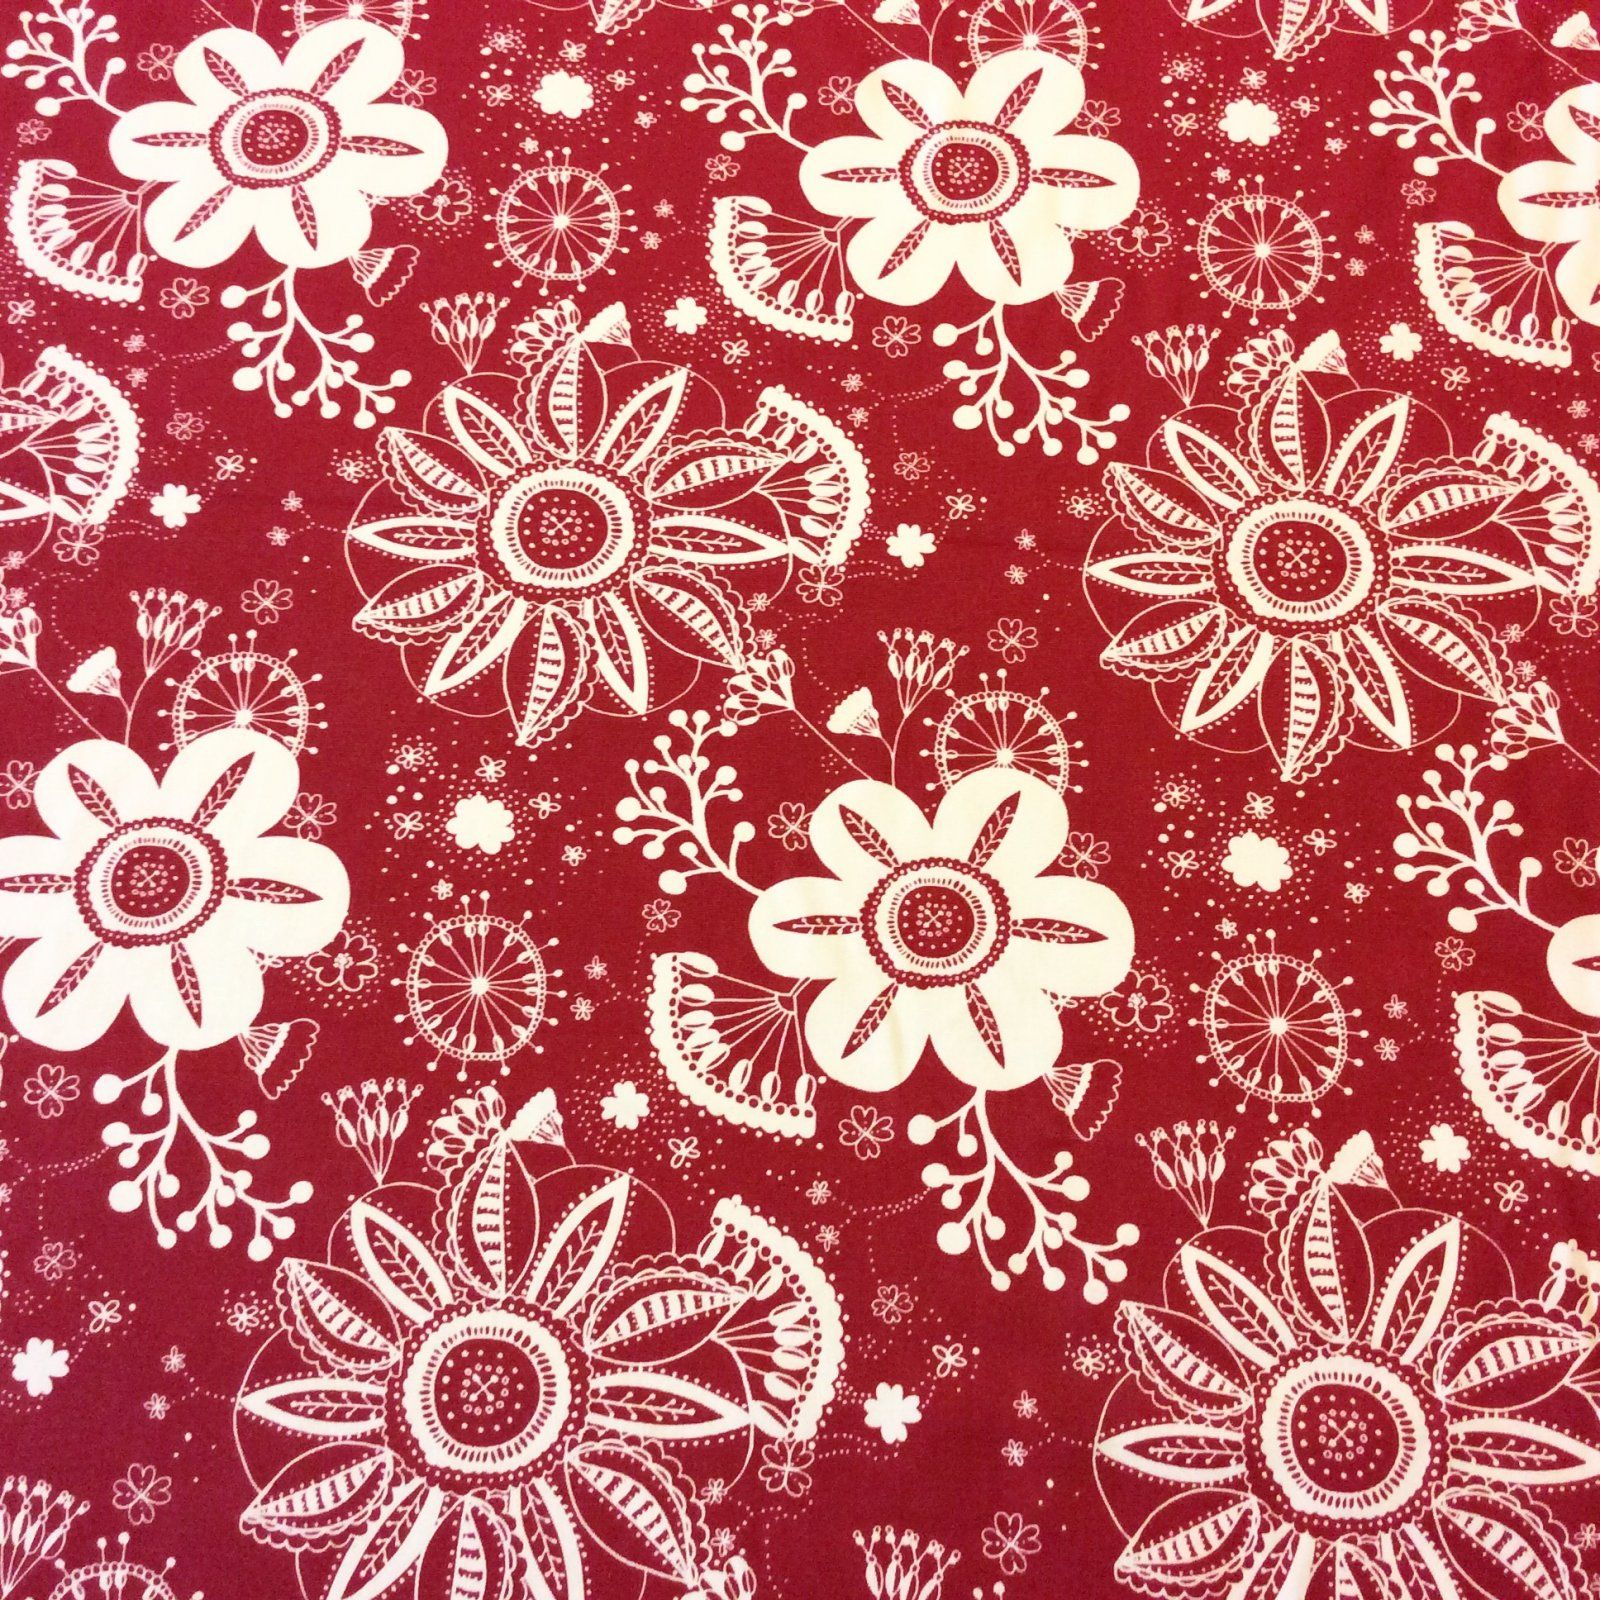 Floral Scarlet Red & White Garden Geo Floral Patio Awning Home Dec Indoor Outdoor Fabric s413